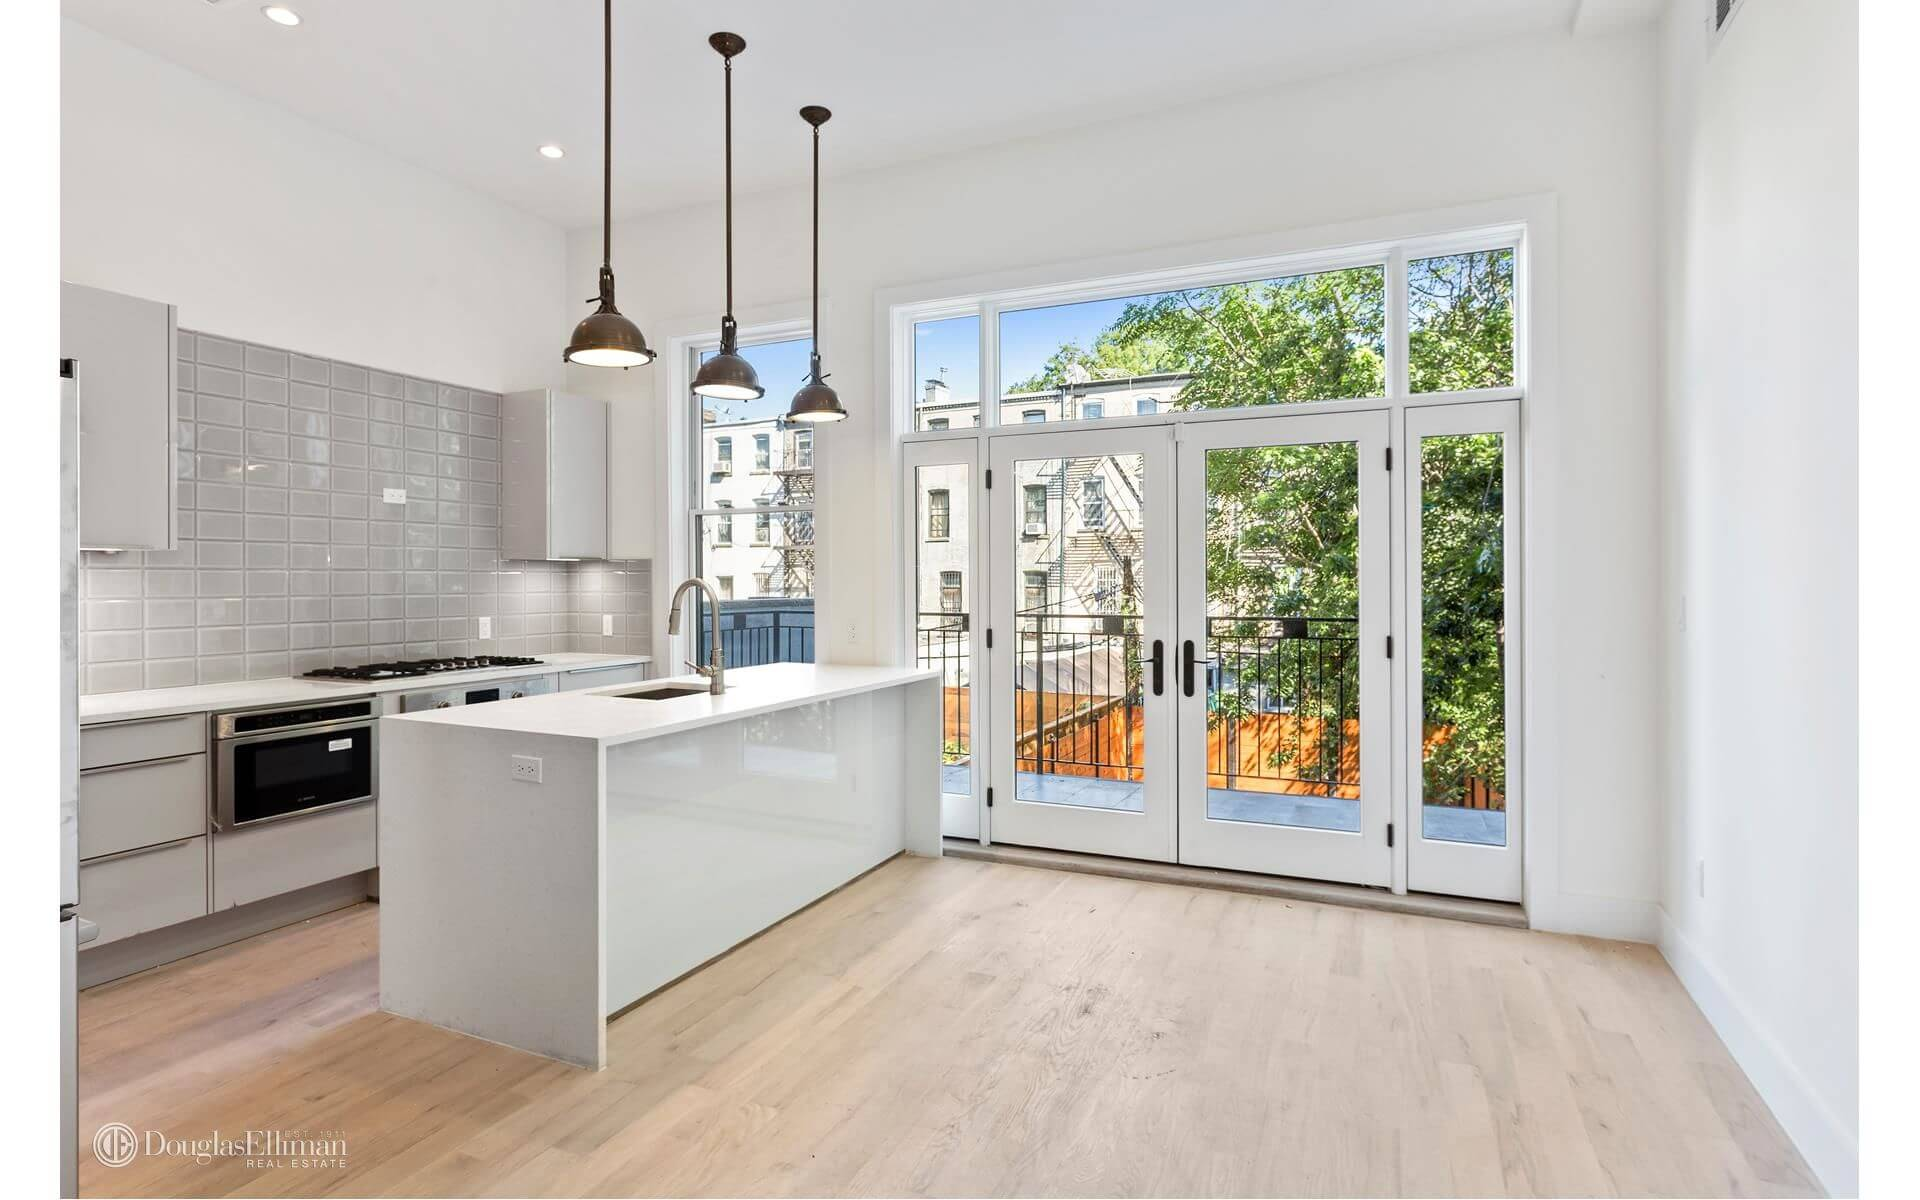 Brooklyn Homes for Sale in Bushwick, Bed Stuy, Crown Heights, Park Slope